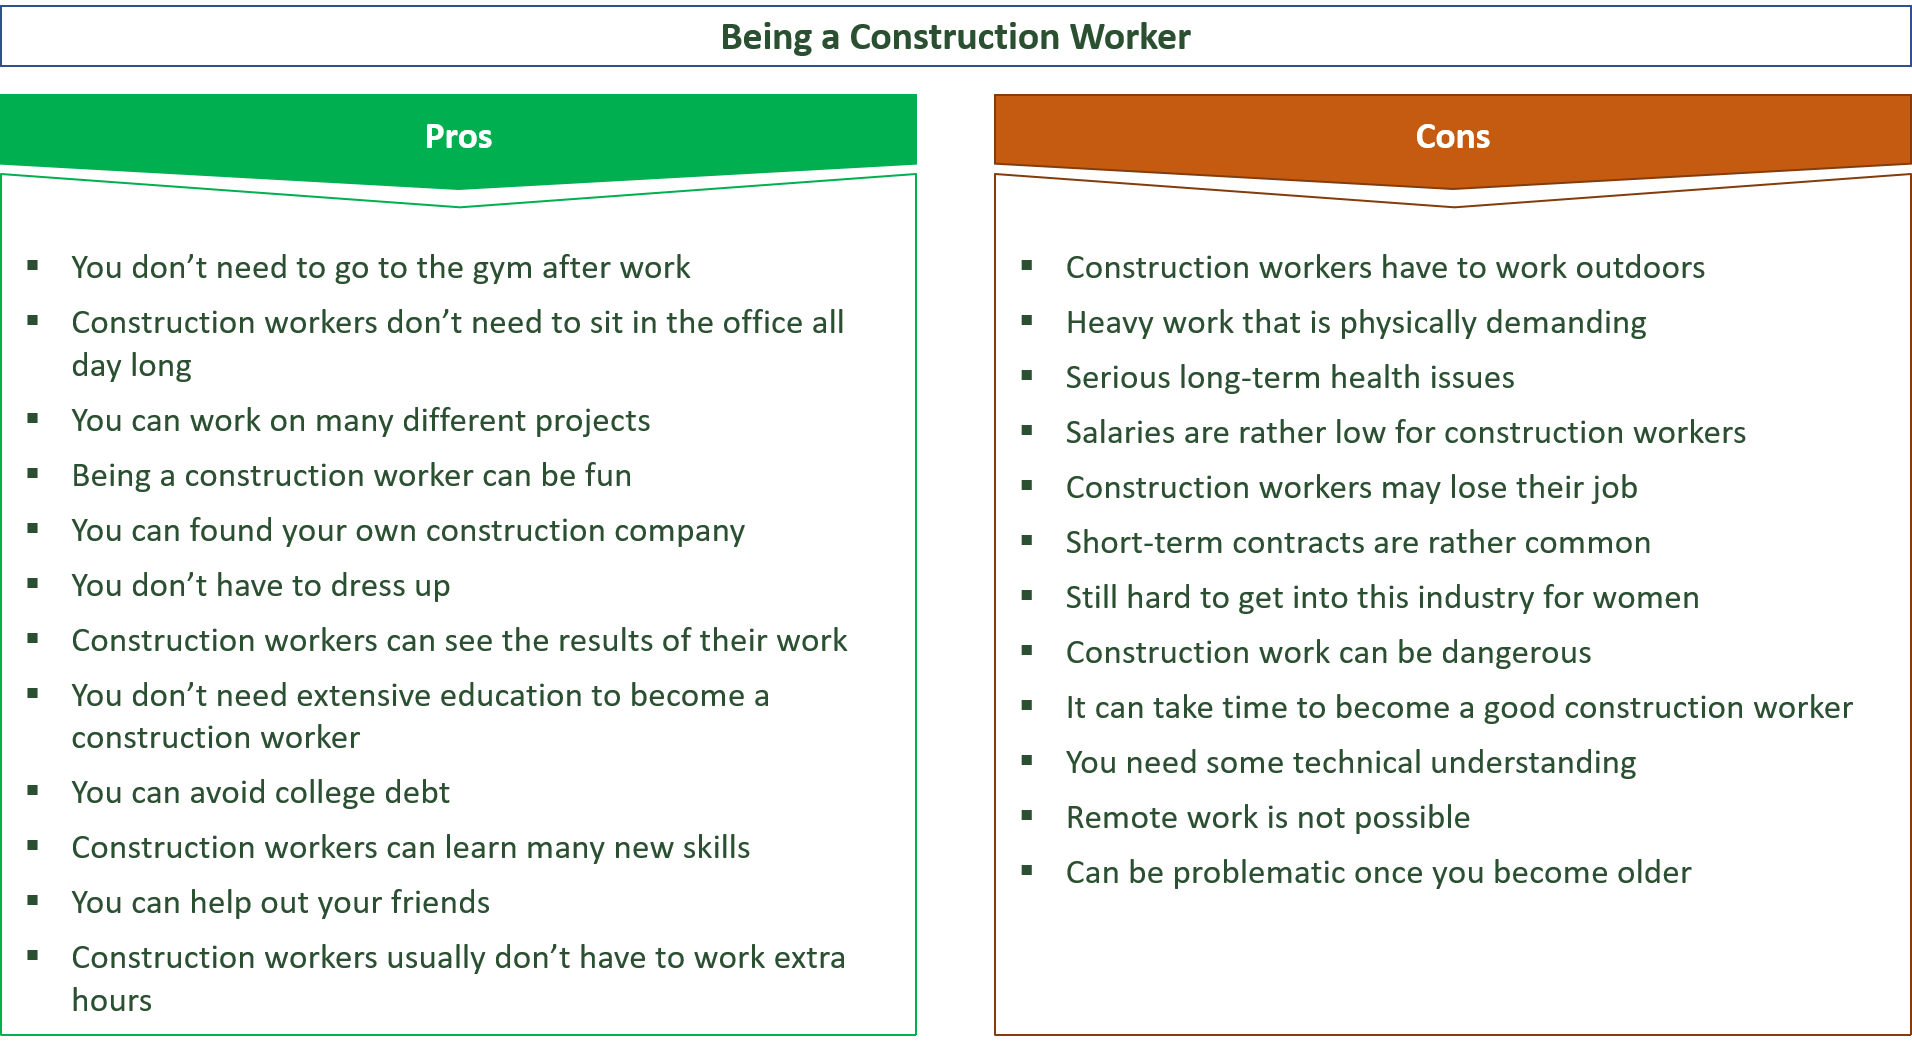 advantages and disadvantages of becoming a construction worker